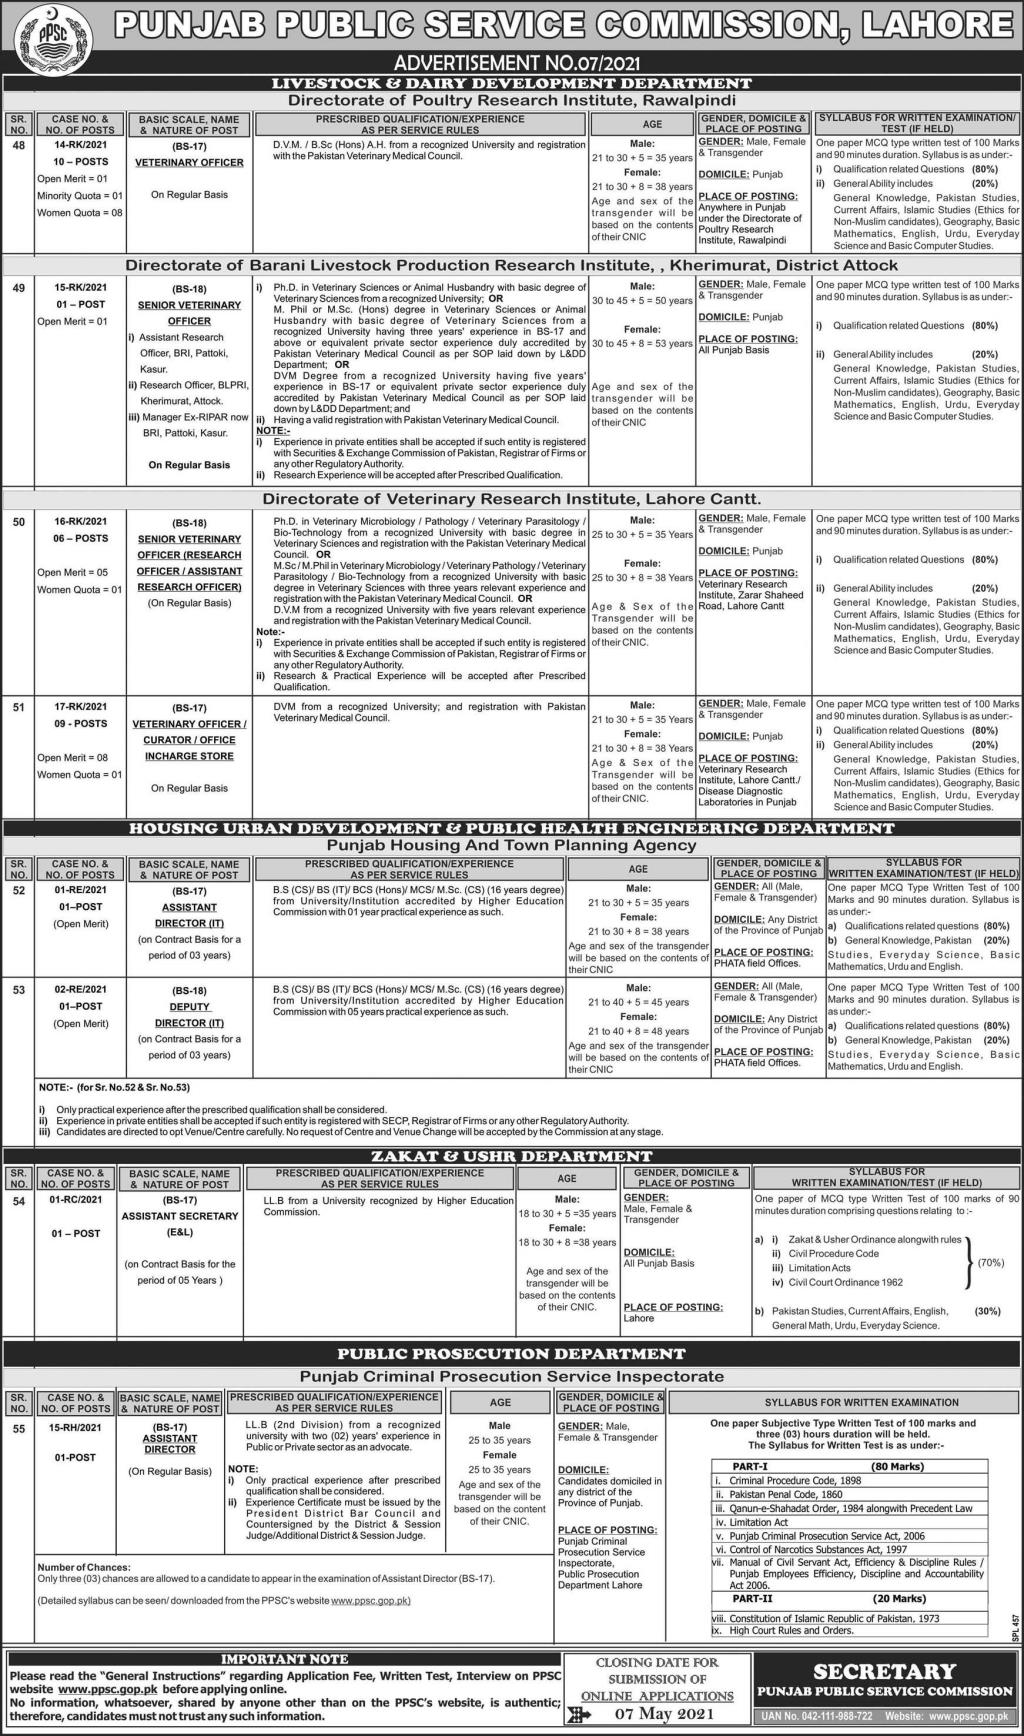 PPSC Jobs 2021 in Lahore Advertisement No. 07-2021